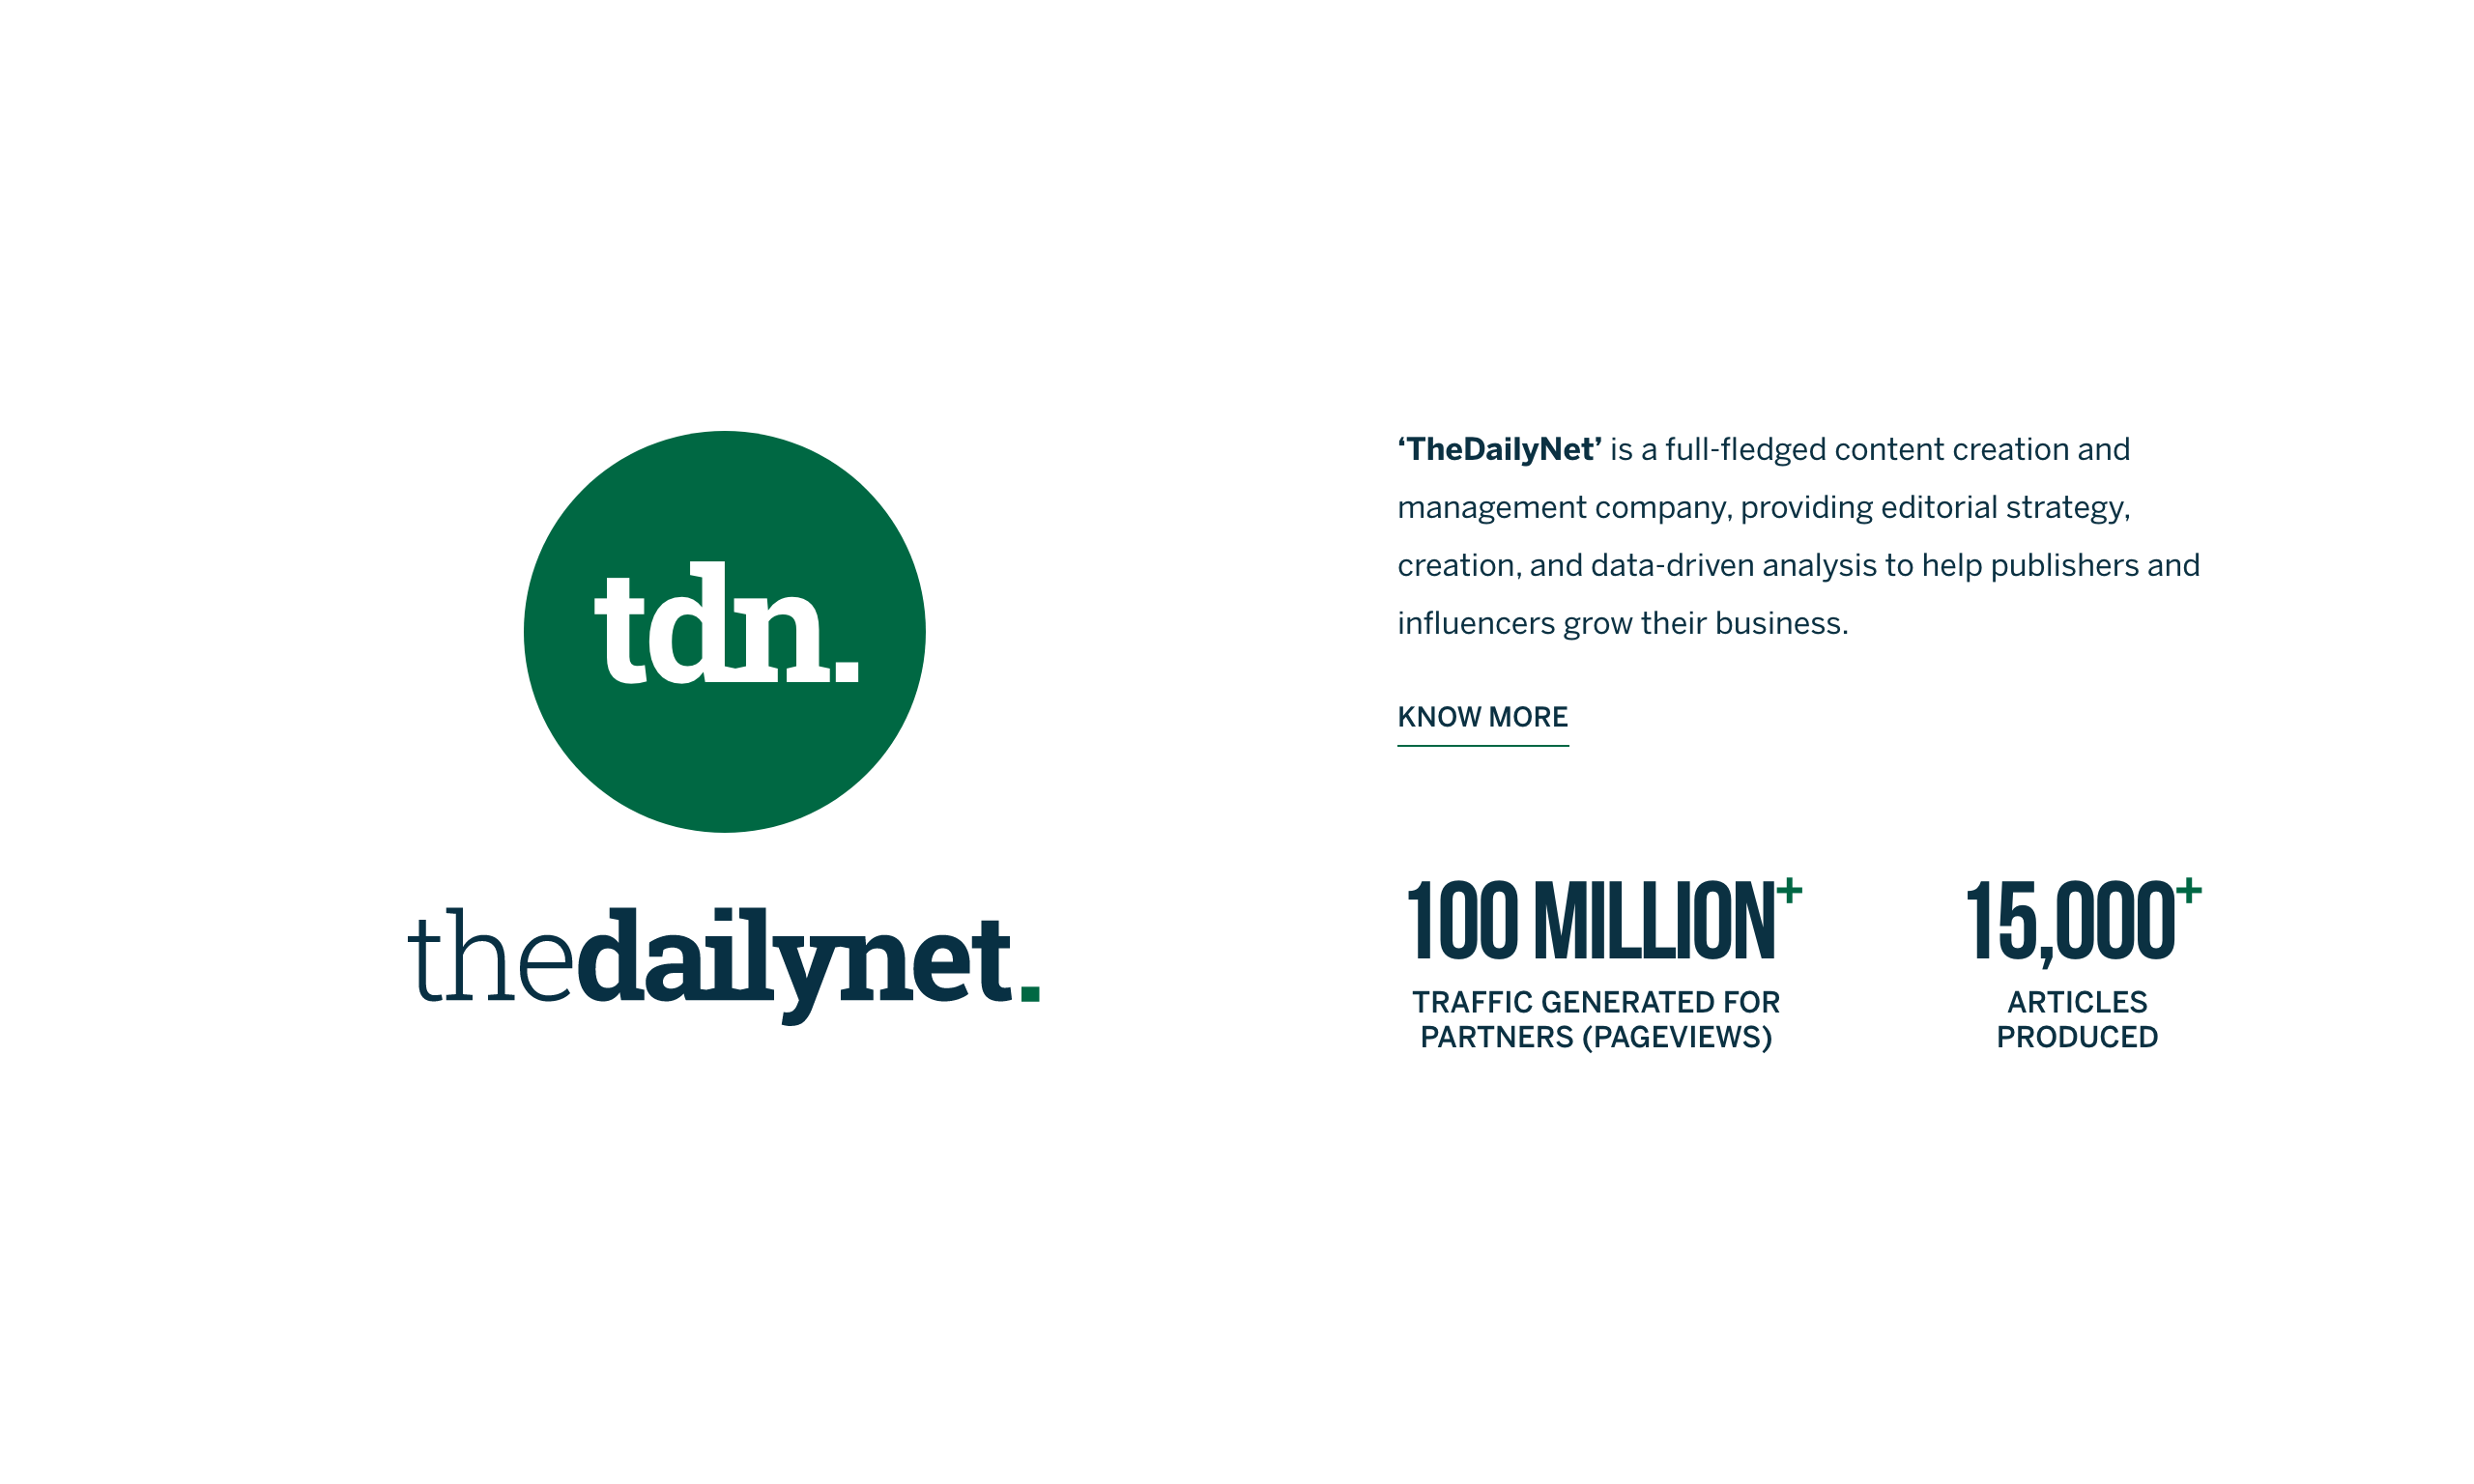 The Daily Net - Editorial Strategy, Creation for Publishers and Influencers